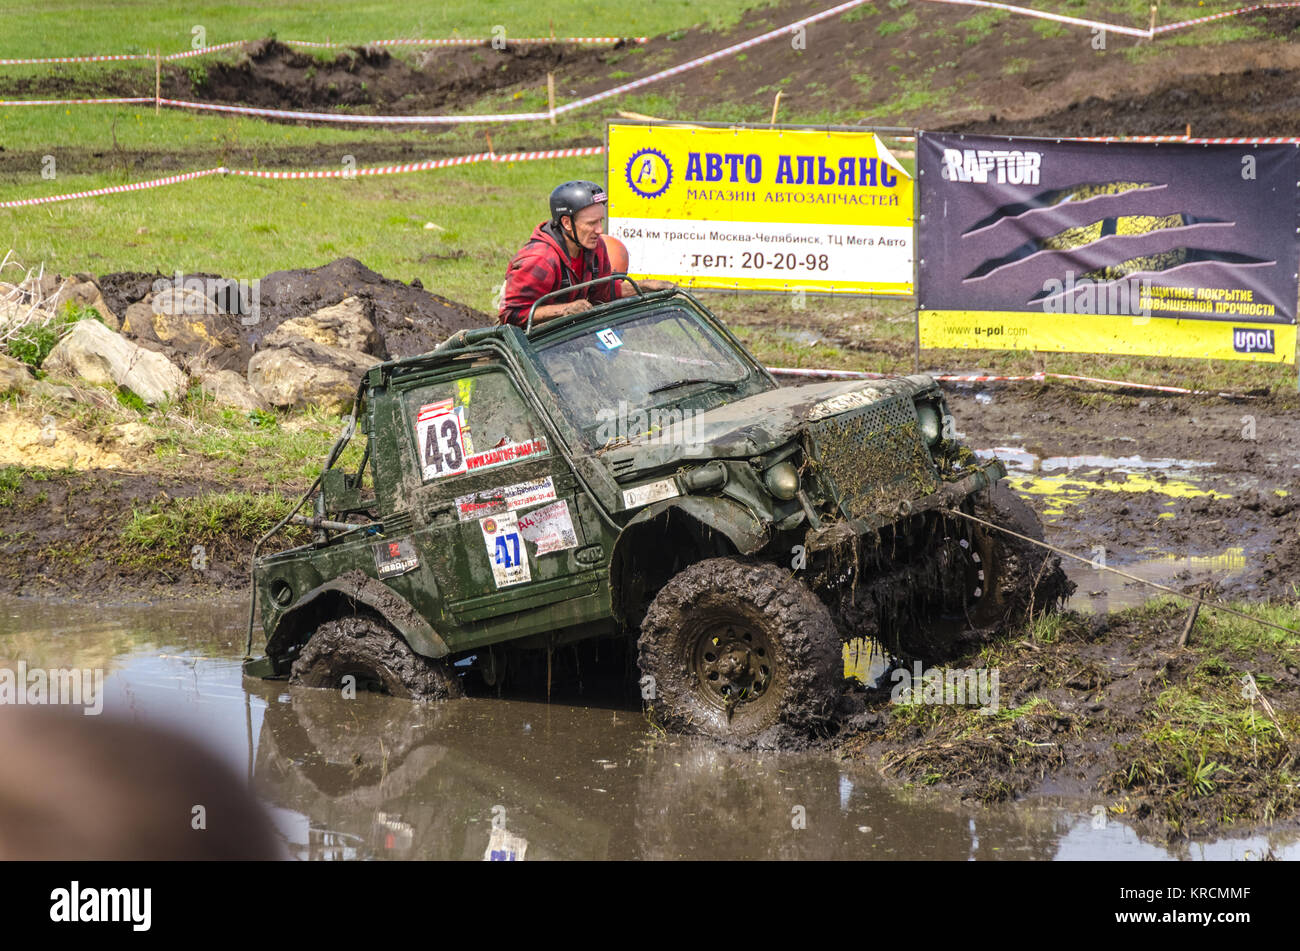 SALOVKA, RUSSIA - MAY 5, 2017: Extreme championship on all-wheel drive cars on impassability at the annual car racing - Stock Image